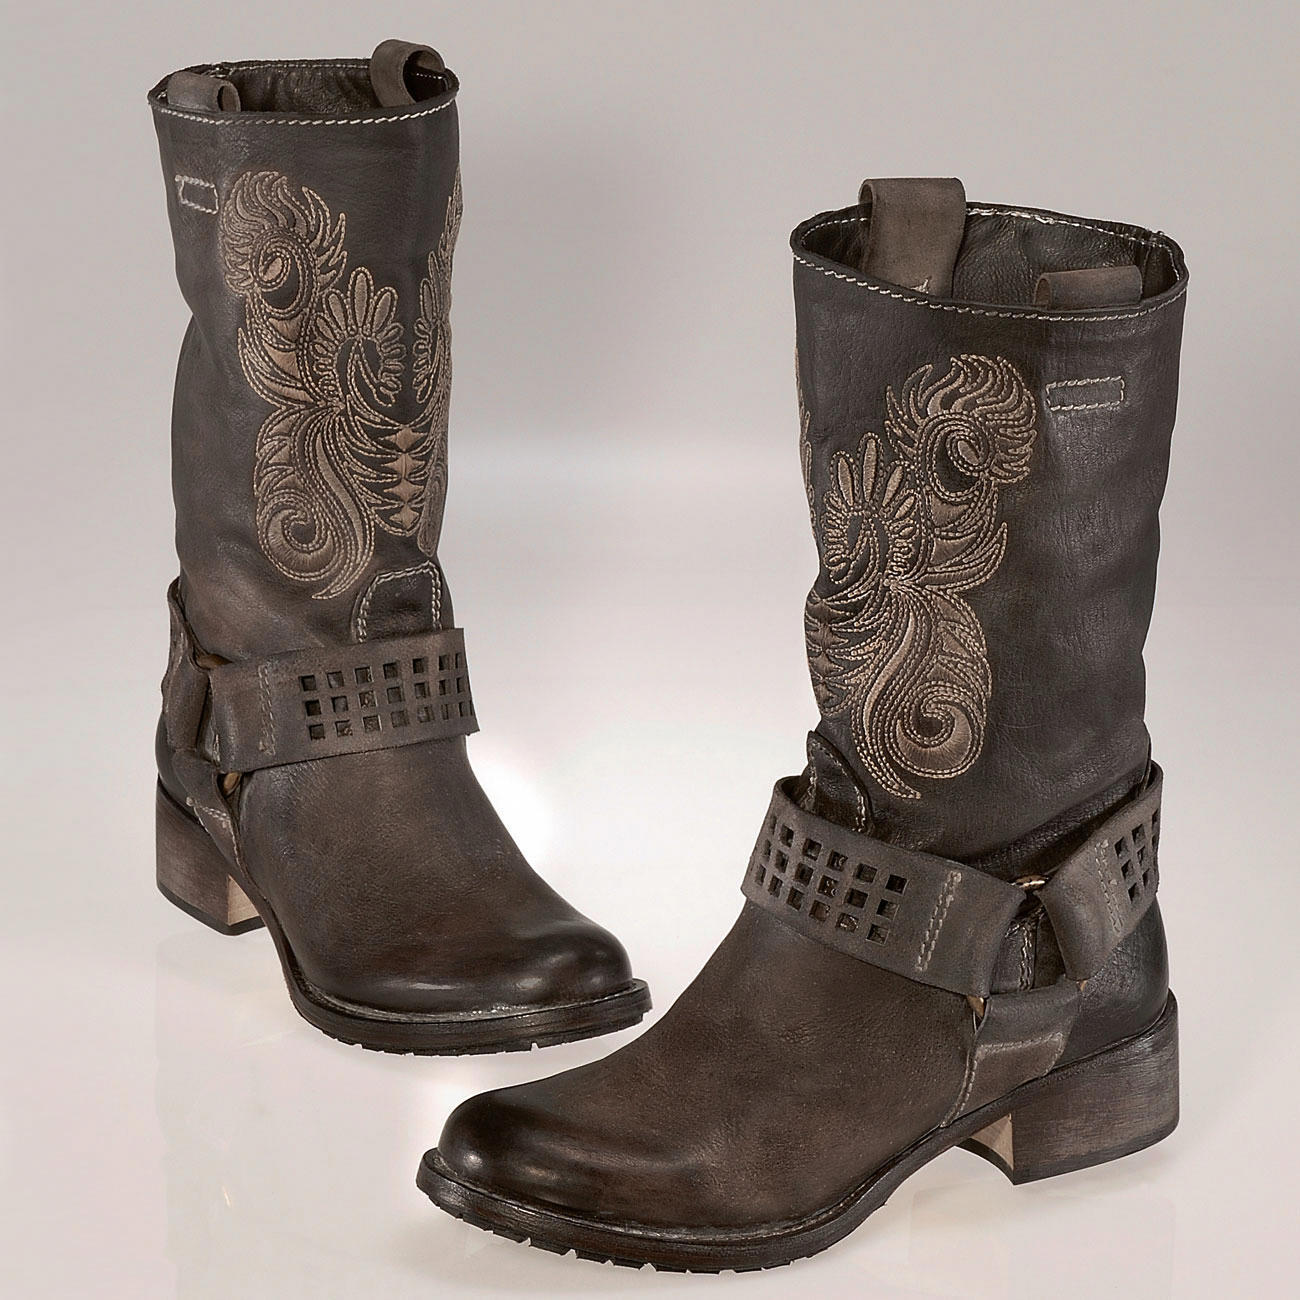 biker boots met borduurse 3 jaar productgarantie pro idee. Black Bedroom Furniture Sets. Home Design Ideas